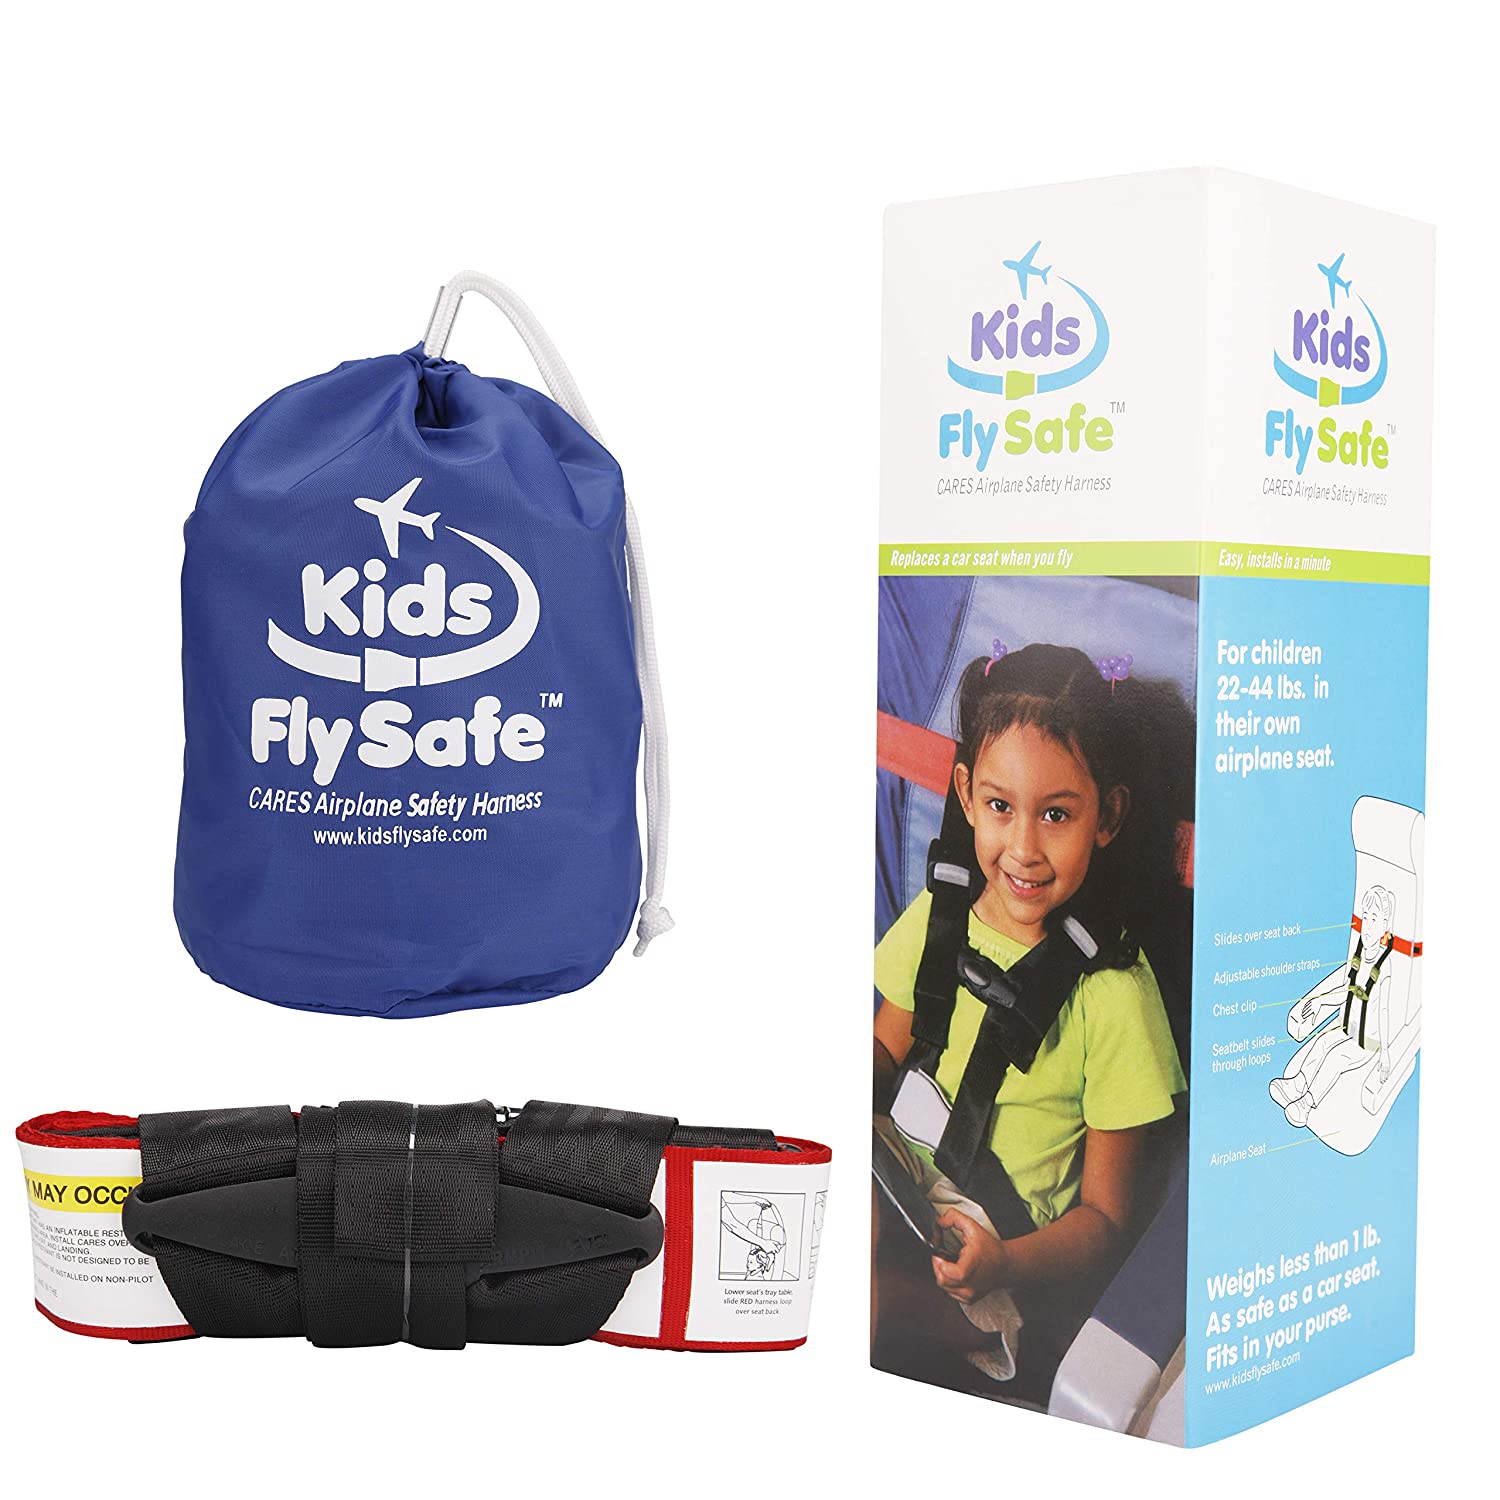 Luxurious Style Child Airplane Safety Travel Harness ~ Clip Strap Safety Airplane Child Restraint System for Baby,Toddlers /& Kids ~ Airplane Travel Accessories for Aviation Travel Use